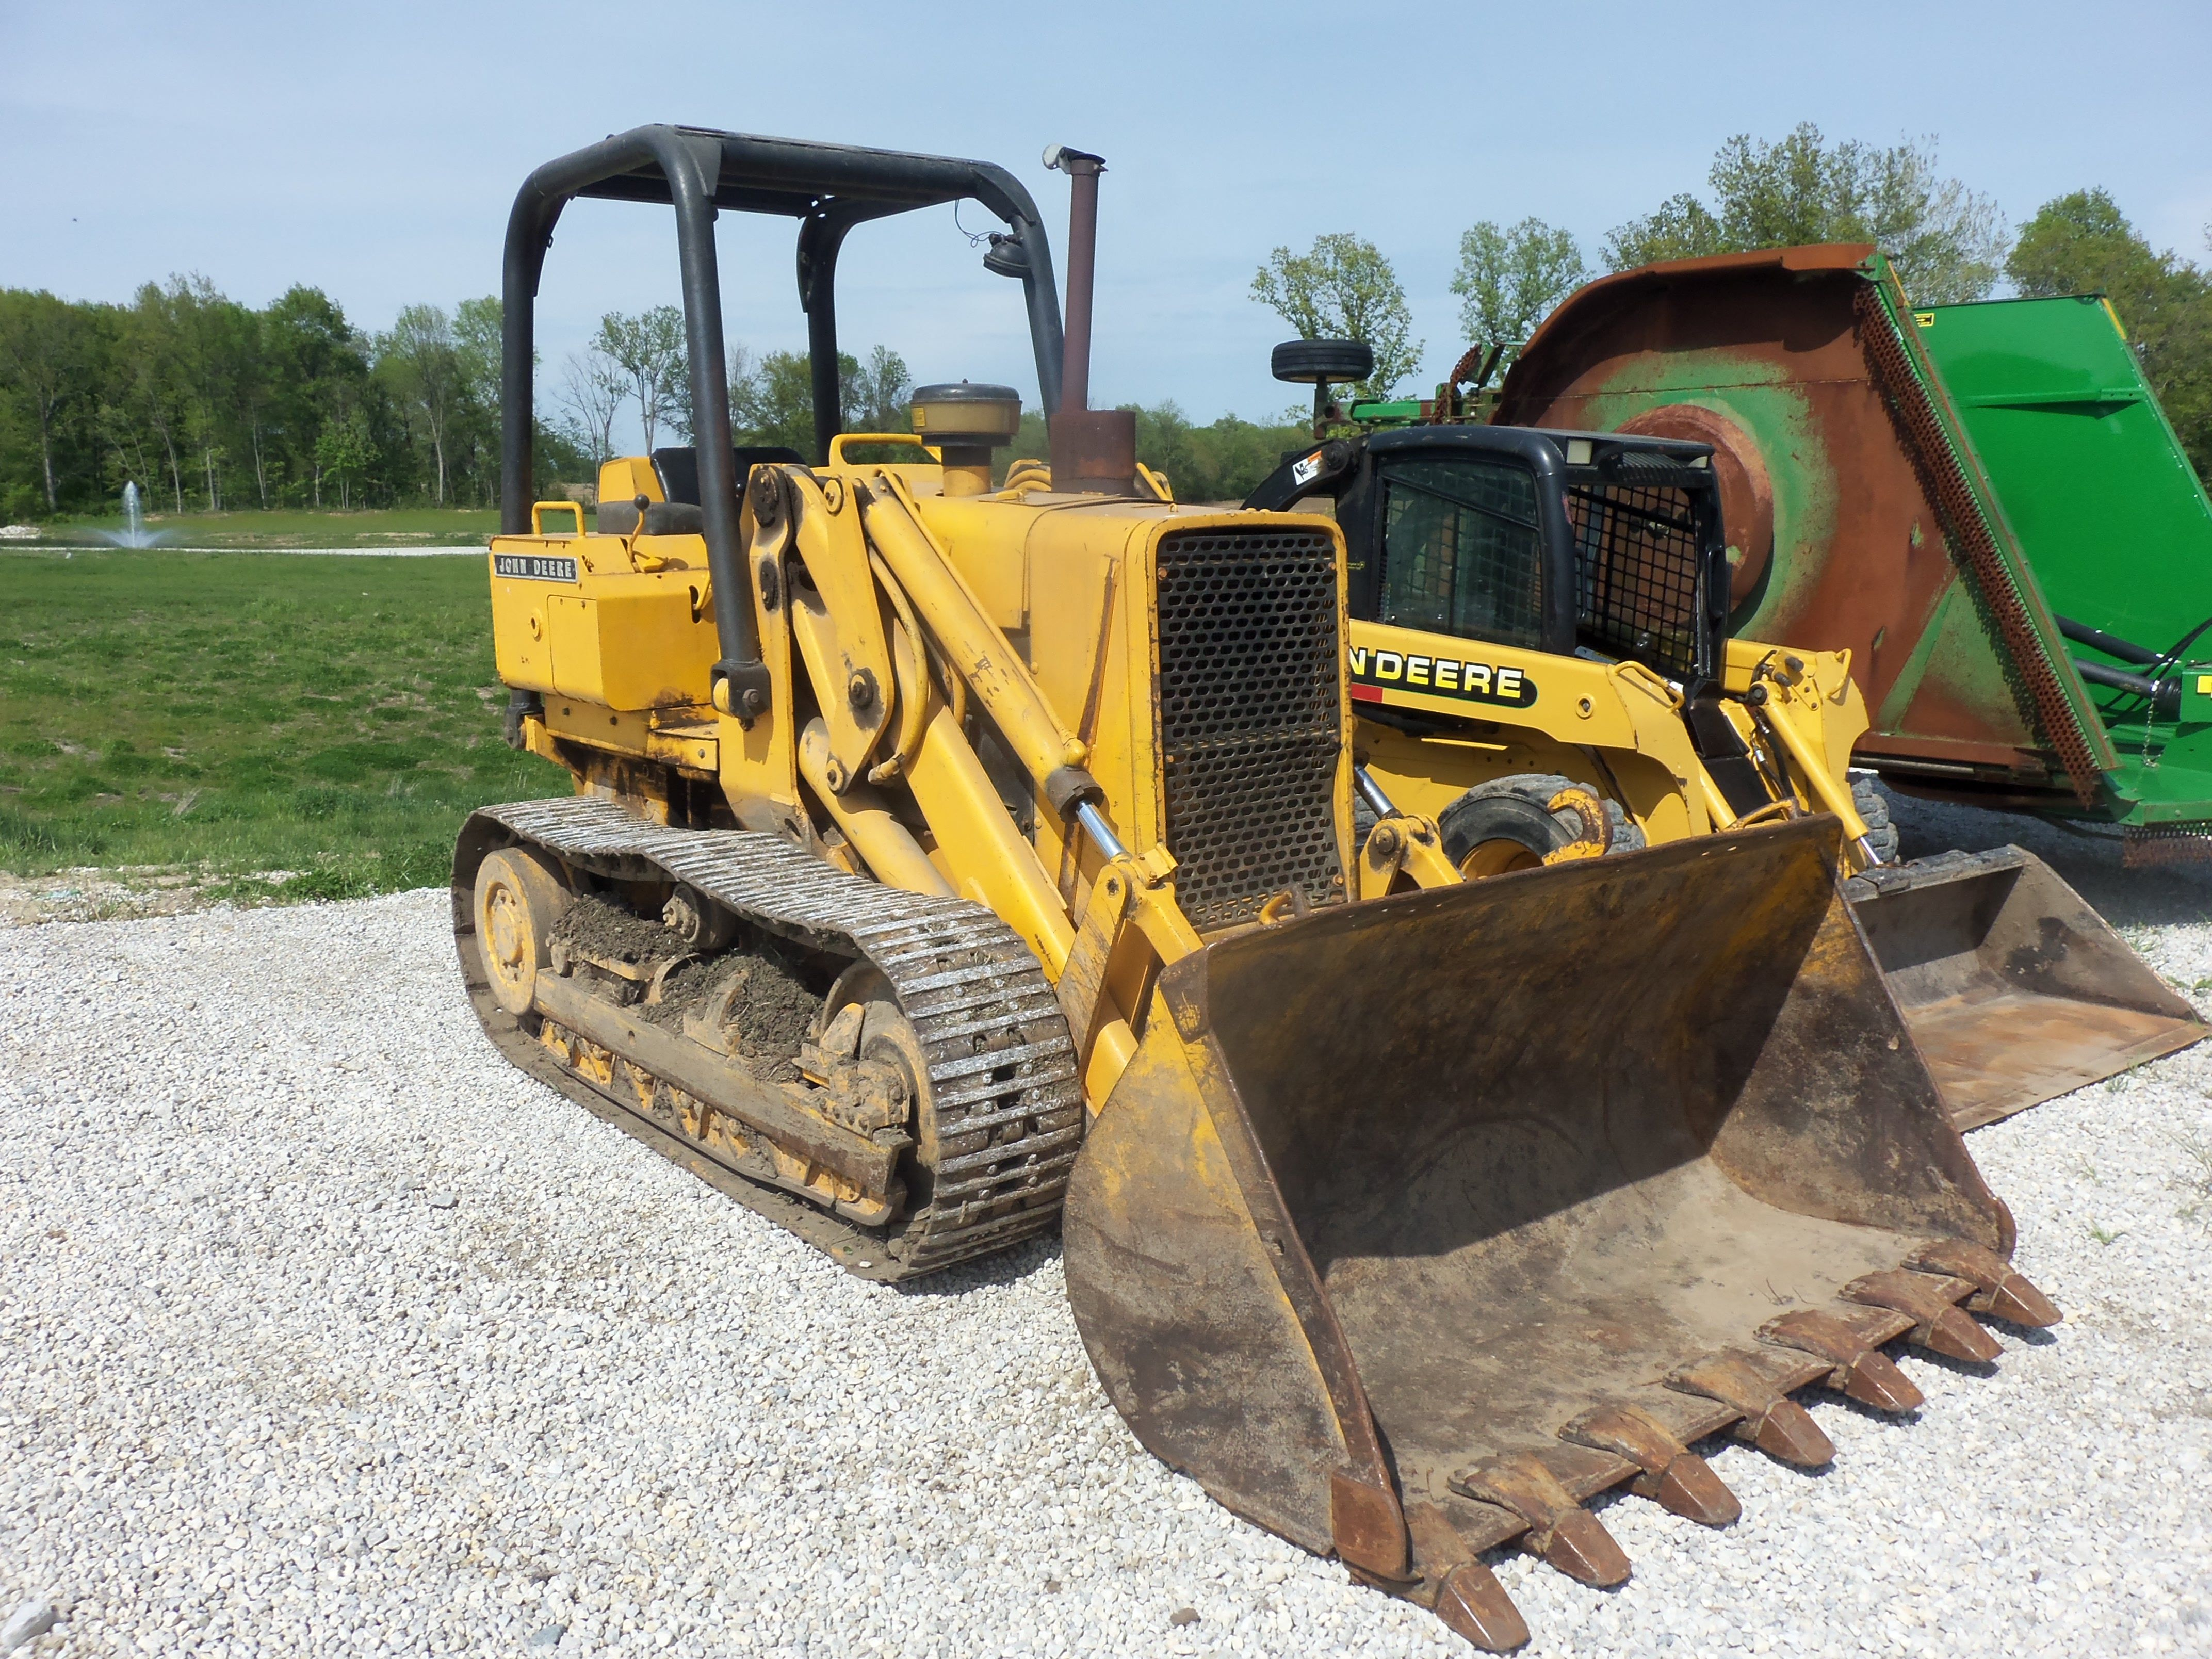 John Deere 555-A crawler loader Serial Number- 260053T.86 gross hp,78 net  hp from a turbocharged 276 cid diesel,17,470 lbs,8-6 hght,1.8 yards.